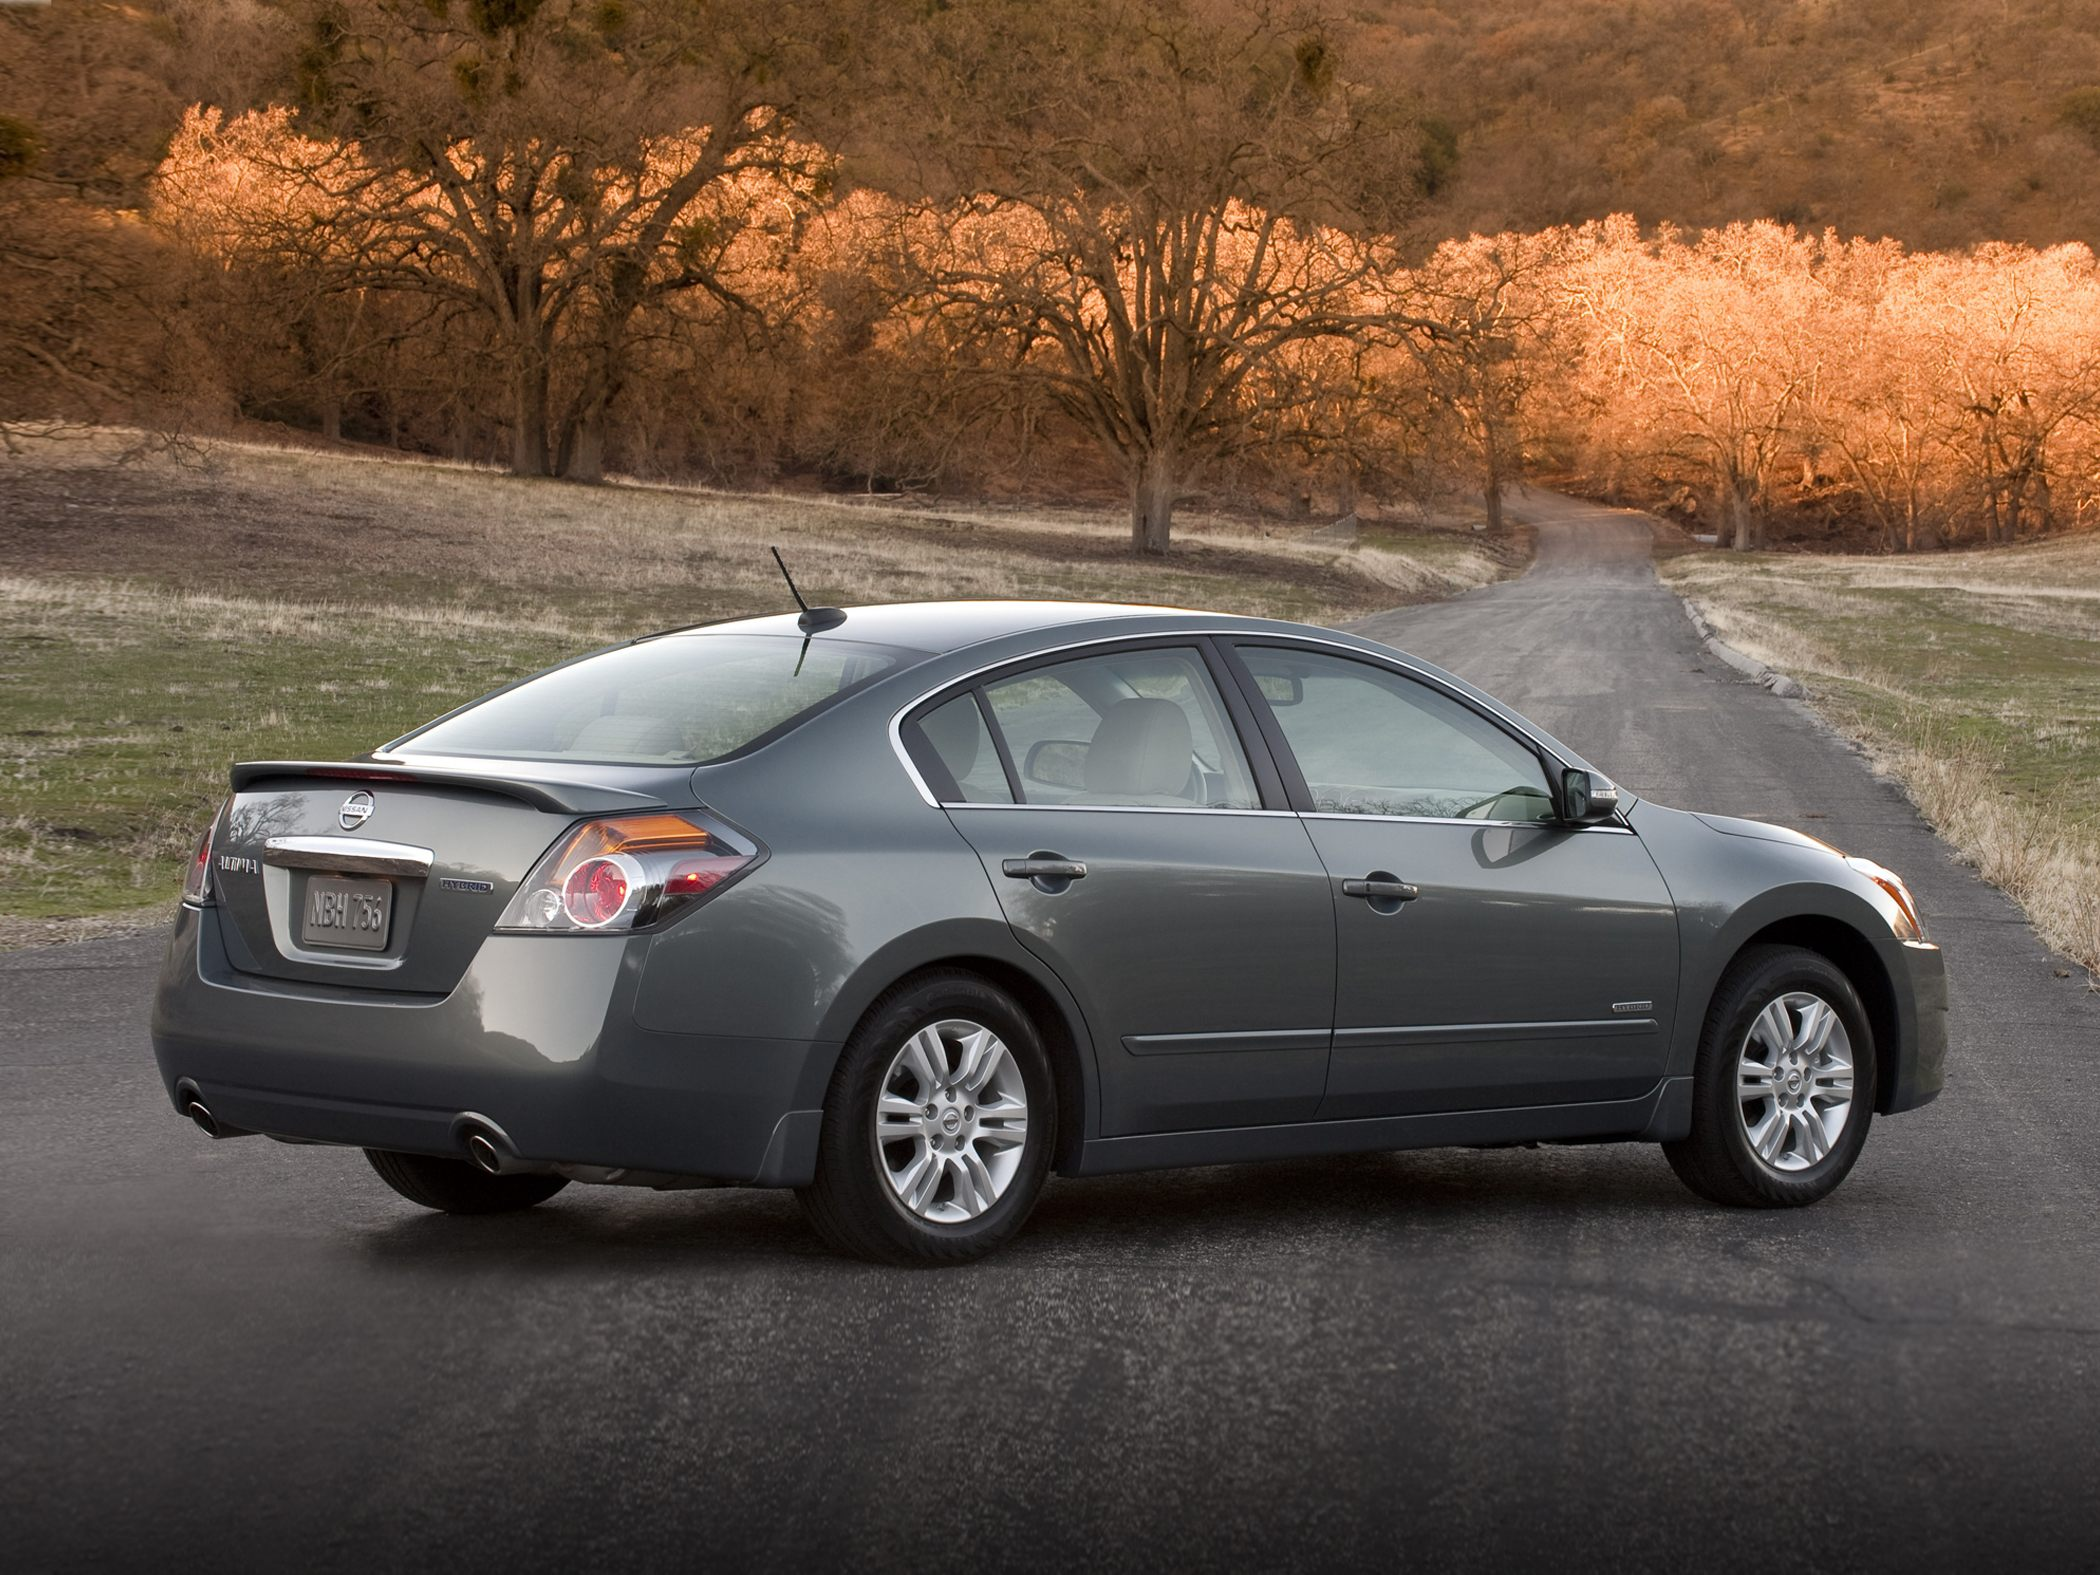 2011 Nissan Altima Hybrid Photos, Informations, Articles ...